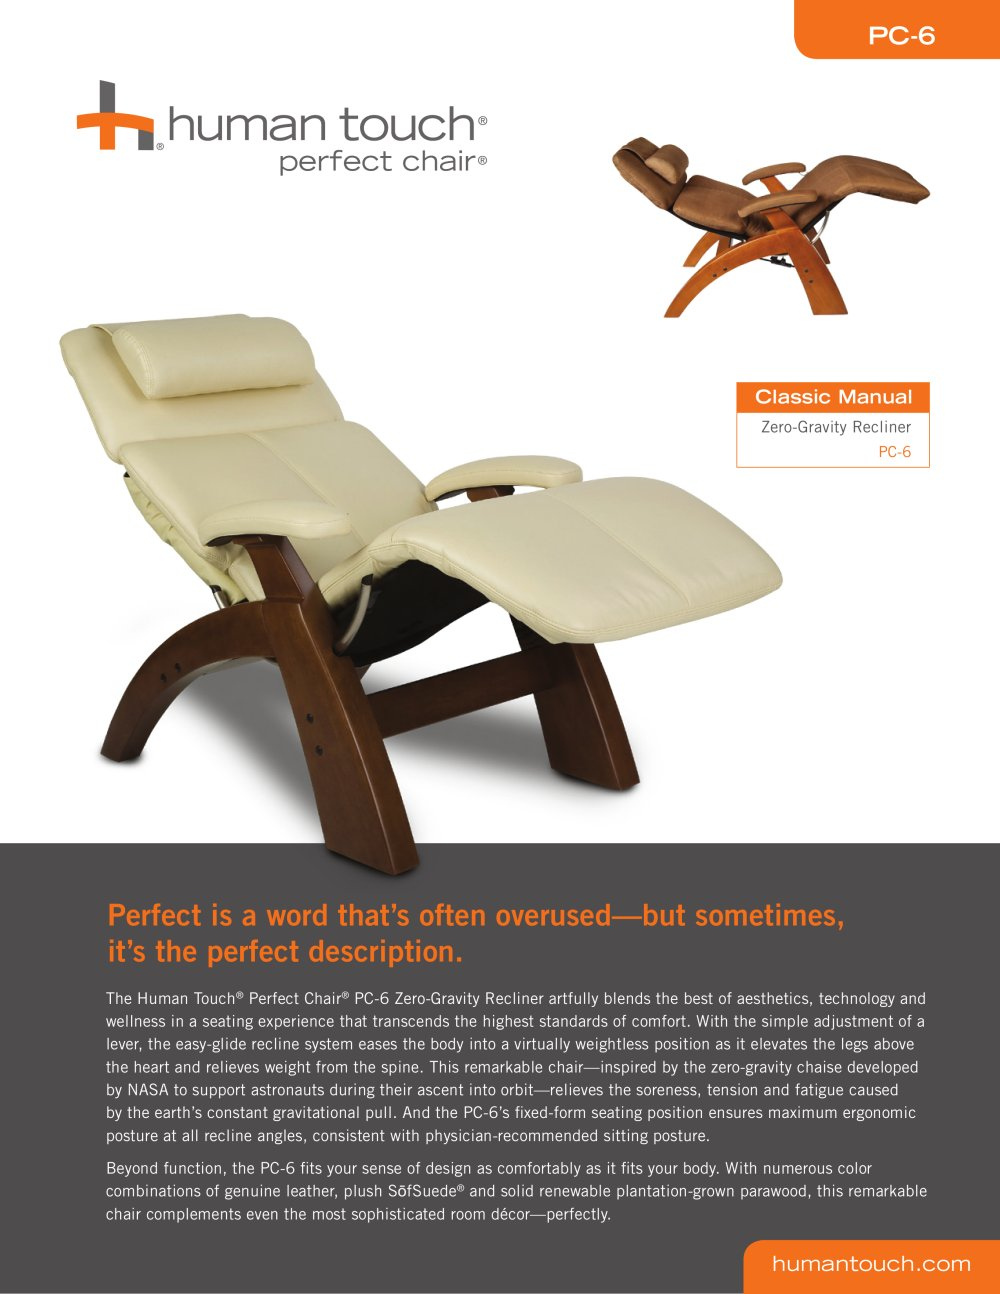 Perfect Chair Recliners:PC 6 Perfect Chair Classic Manual Zero Gravity   1  / 2 Pages